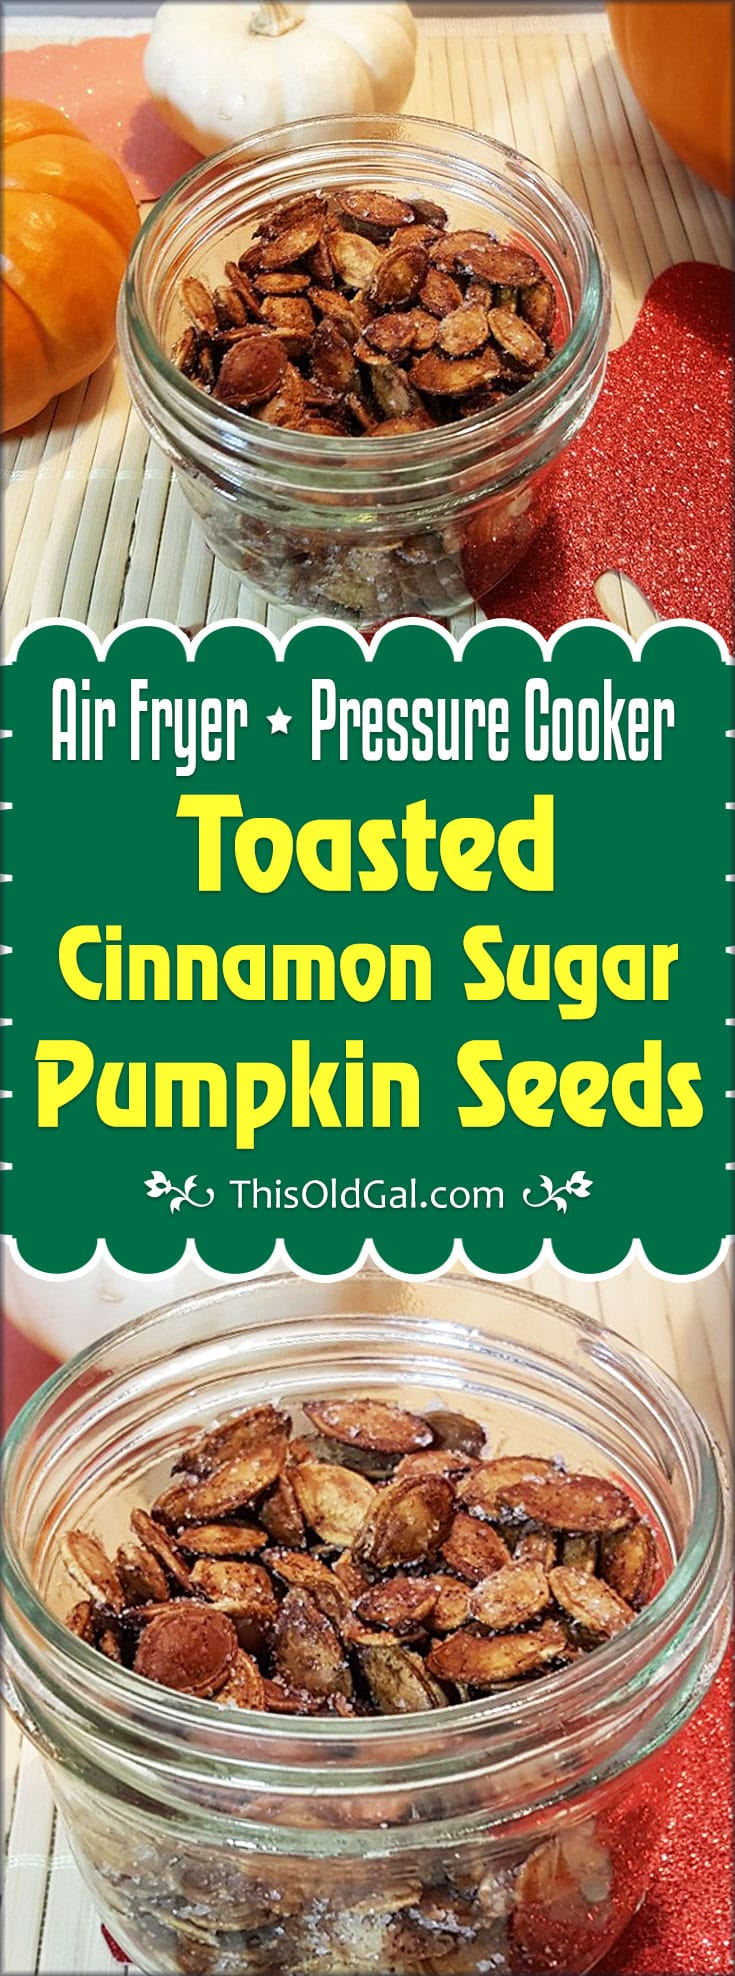 Toasted Cinnamon Sugar Pumpkin Seeds (Air Fryer, Pressure Cooker)